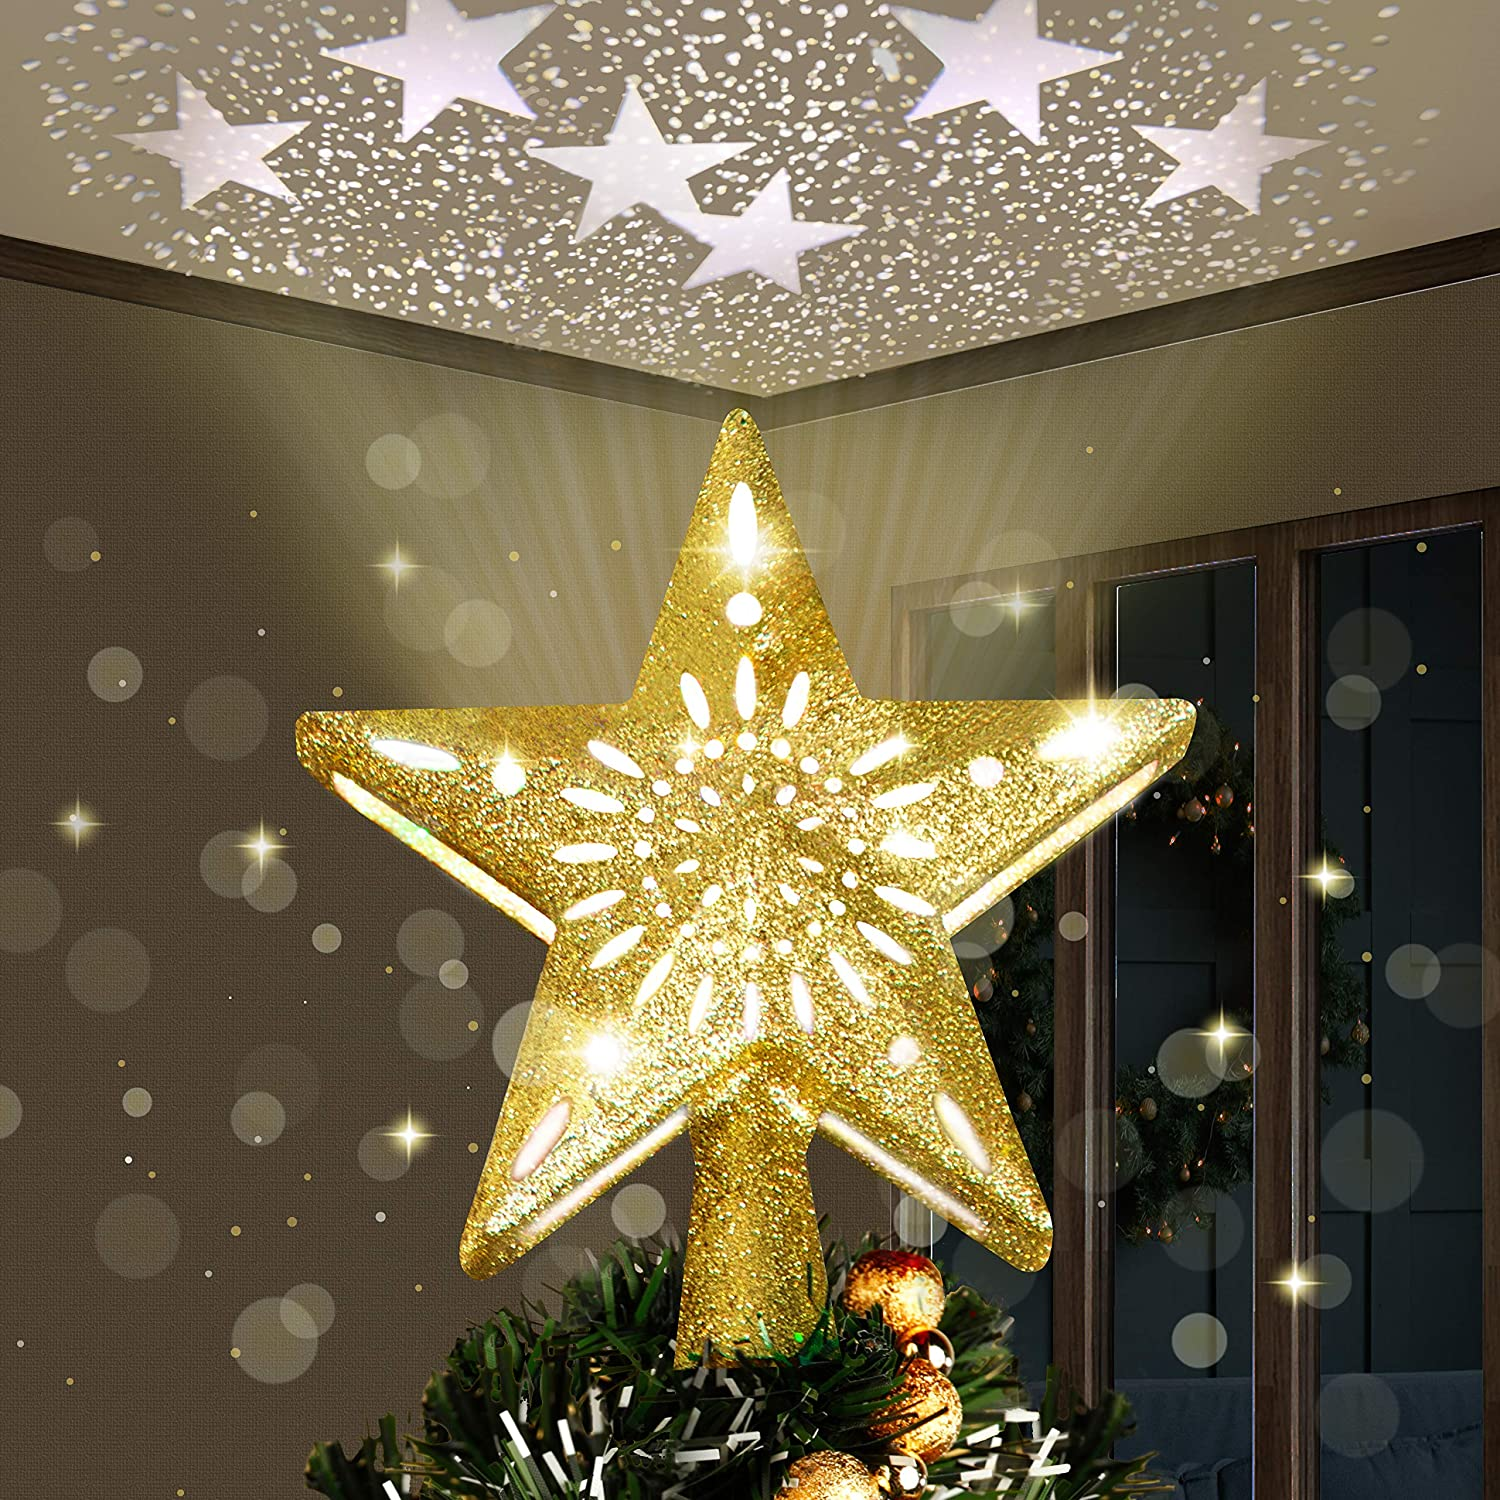 Joiedomi Manufacturer OFFicial shop Sales of SALE items from new works Gold Star Tree Topper Decorations H Christmas for